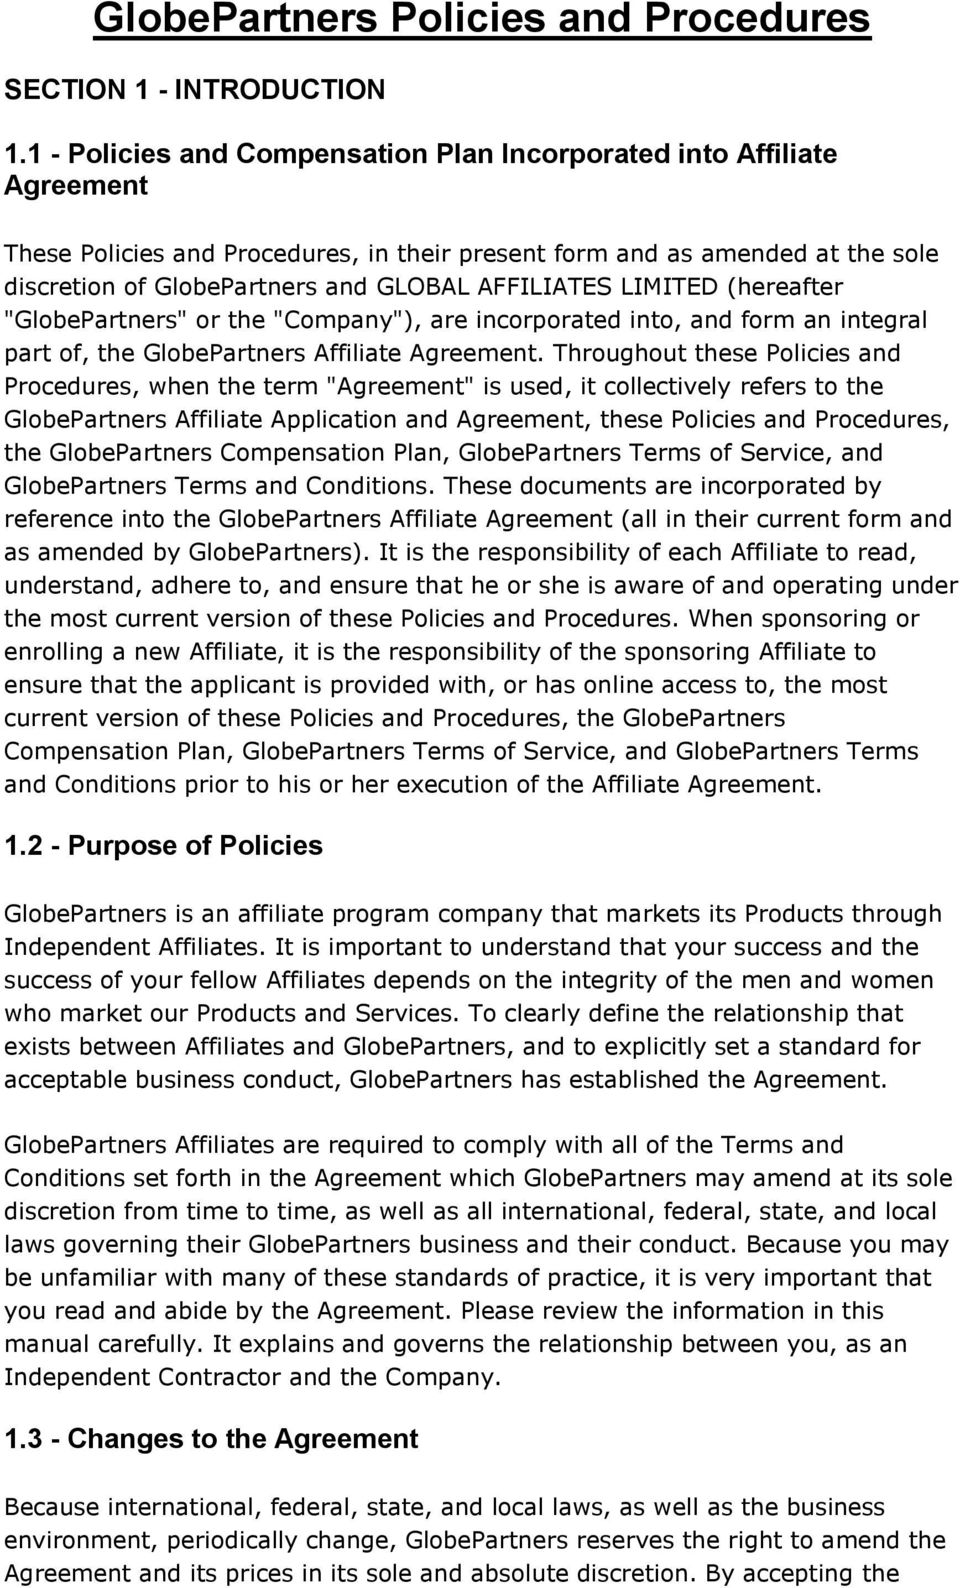 "AFFILIATES LIMITED (hereafter ""GlobePartners"" or the ""Company""), are incorporated into, and form an integral part of, the GlobePartners Affiliate Agreement."